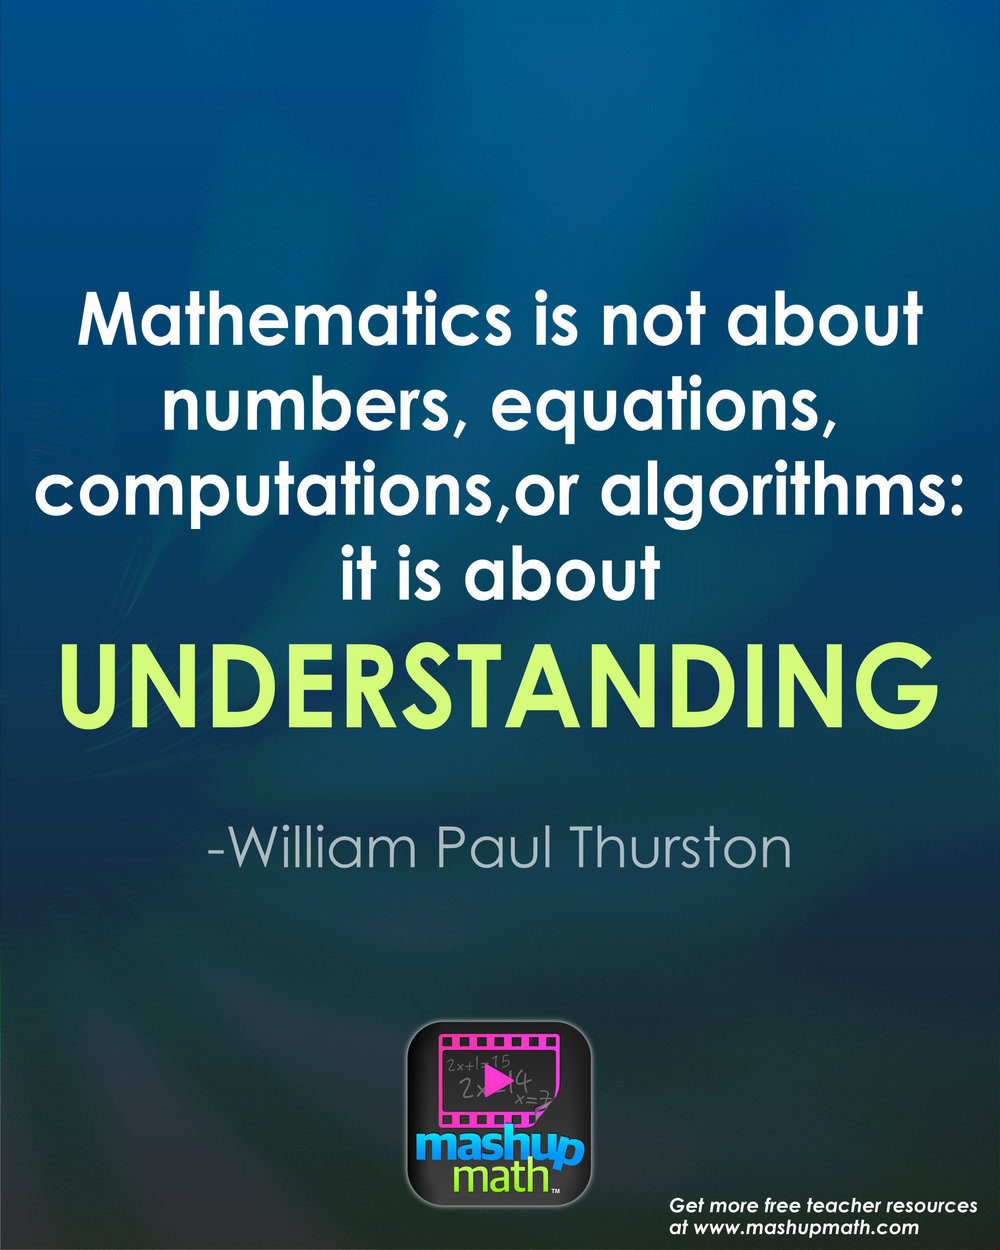 17 Groovy Math Quotes to Post in Your Classroom — Mashup Math